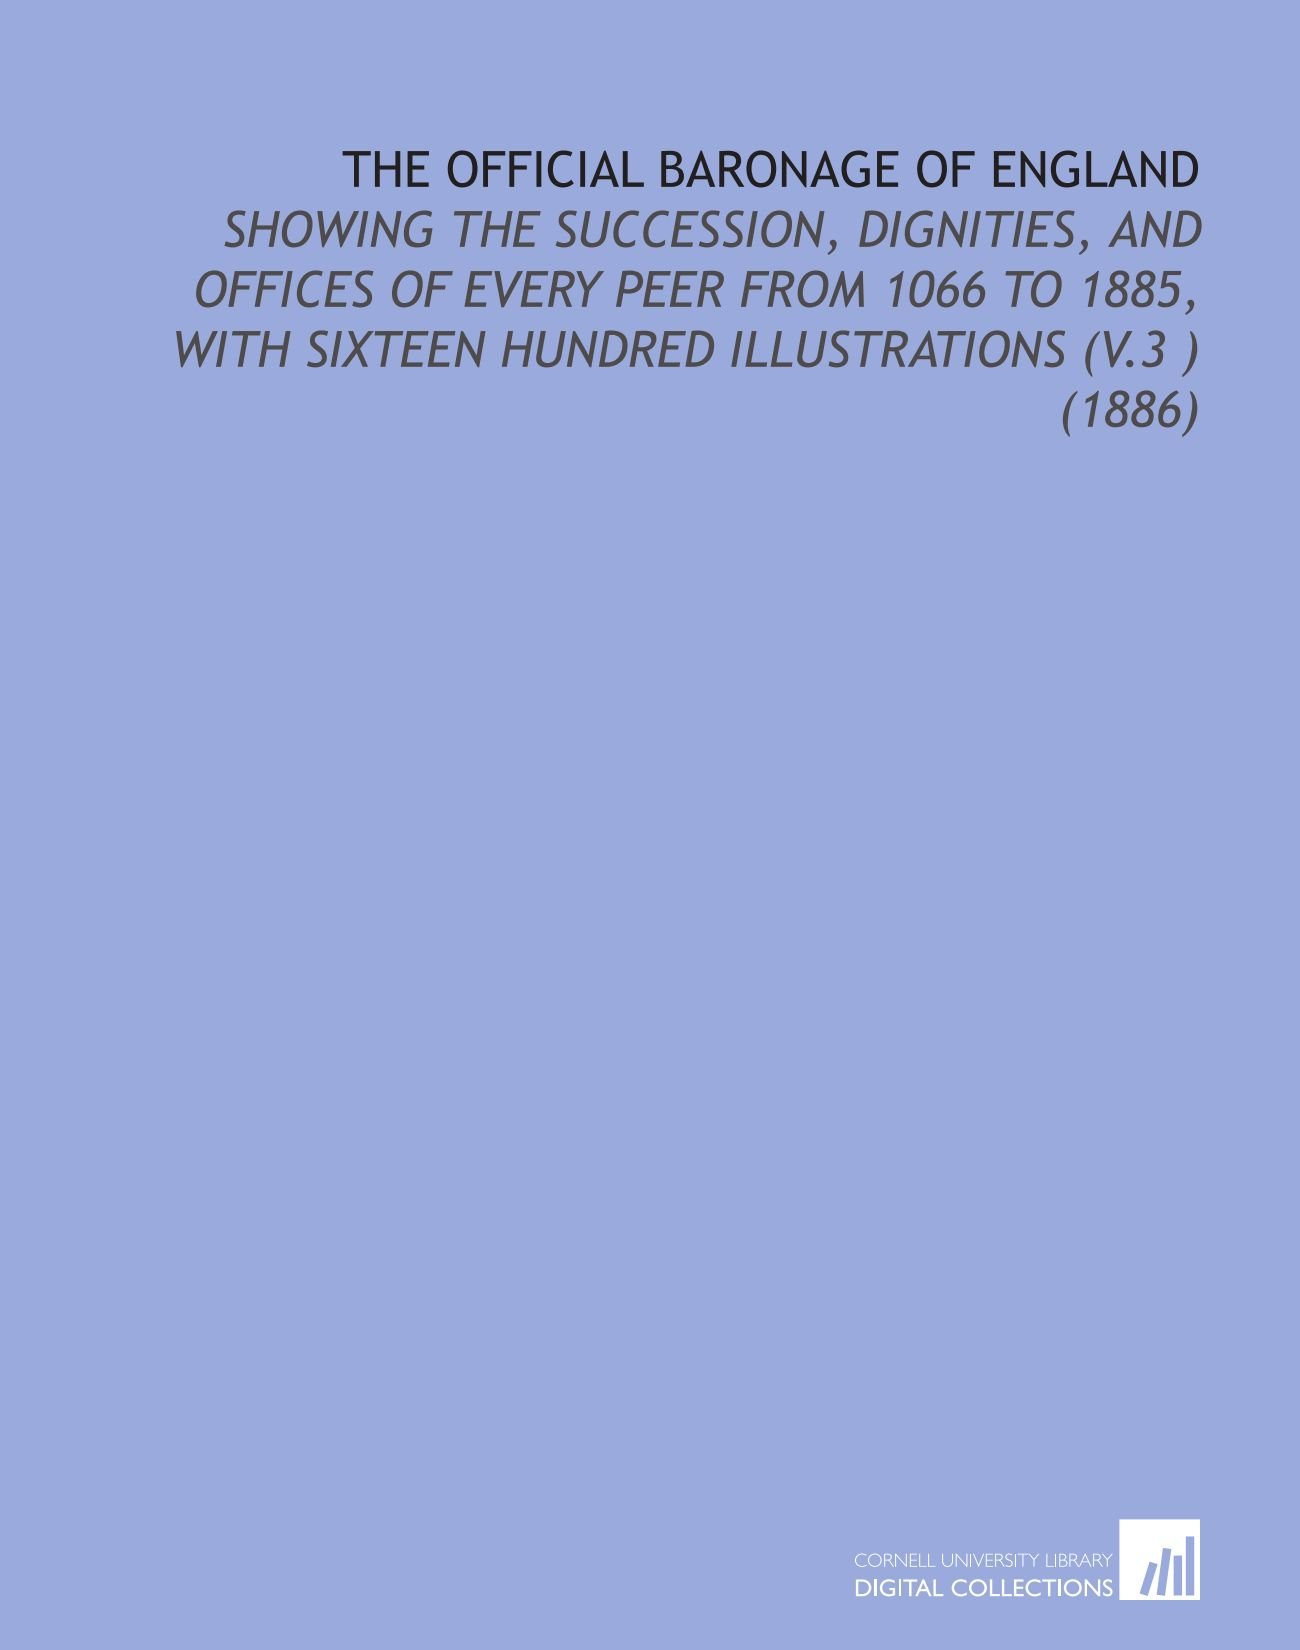 The Official Baronage of England: Showing the Succession, Dignities, and Offices of Every Peer From 1066 to 1885, With Sixteen Hundred Illustrations (V.3 ) (1886) pdf